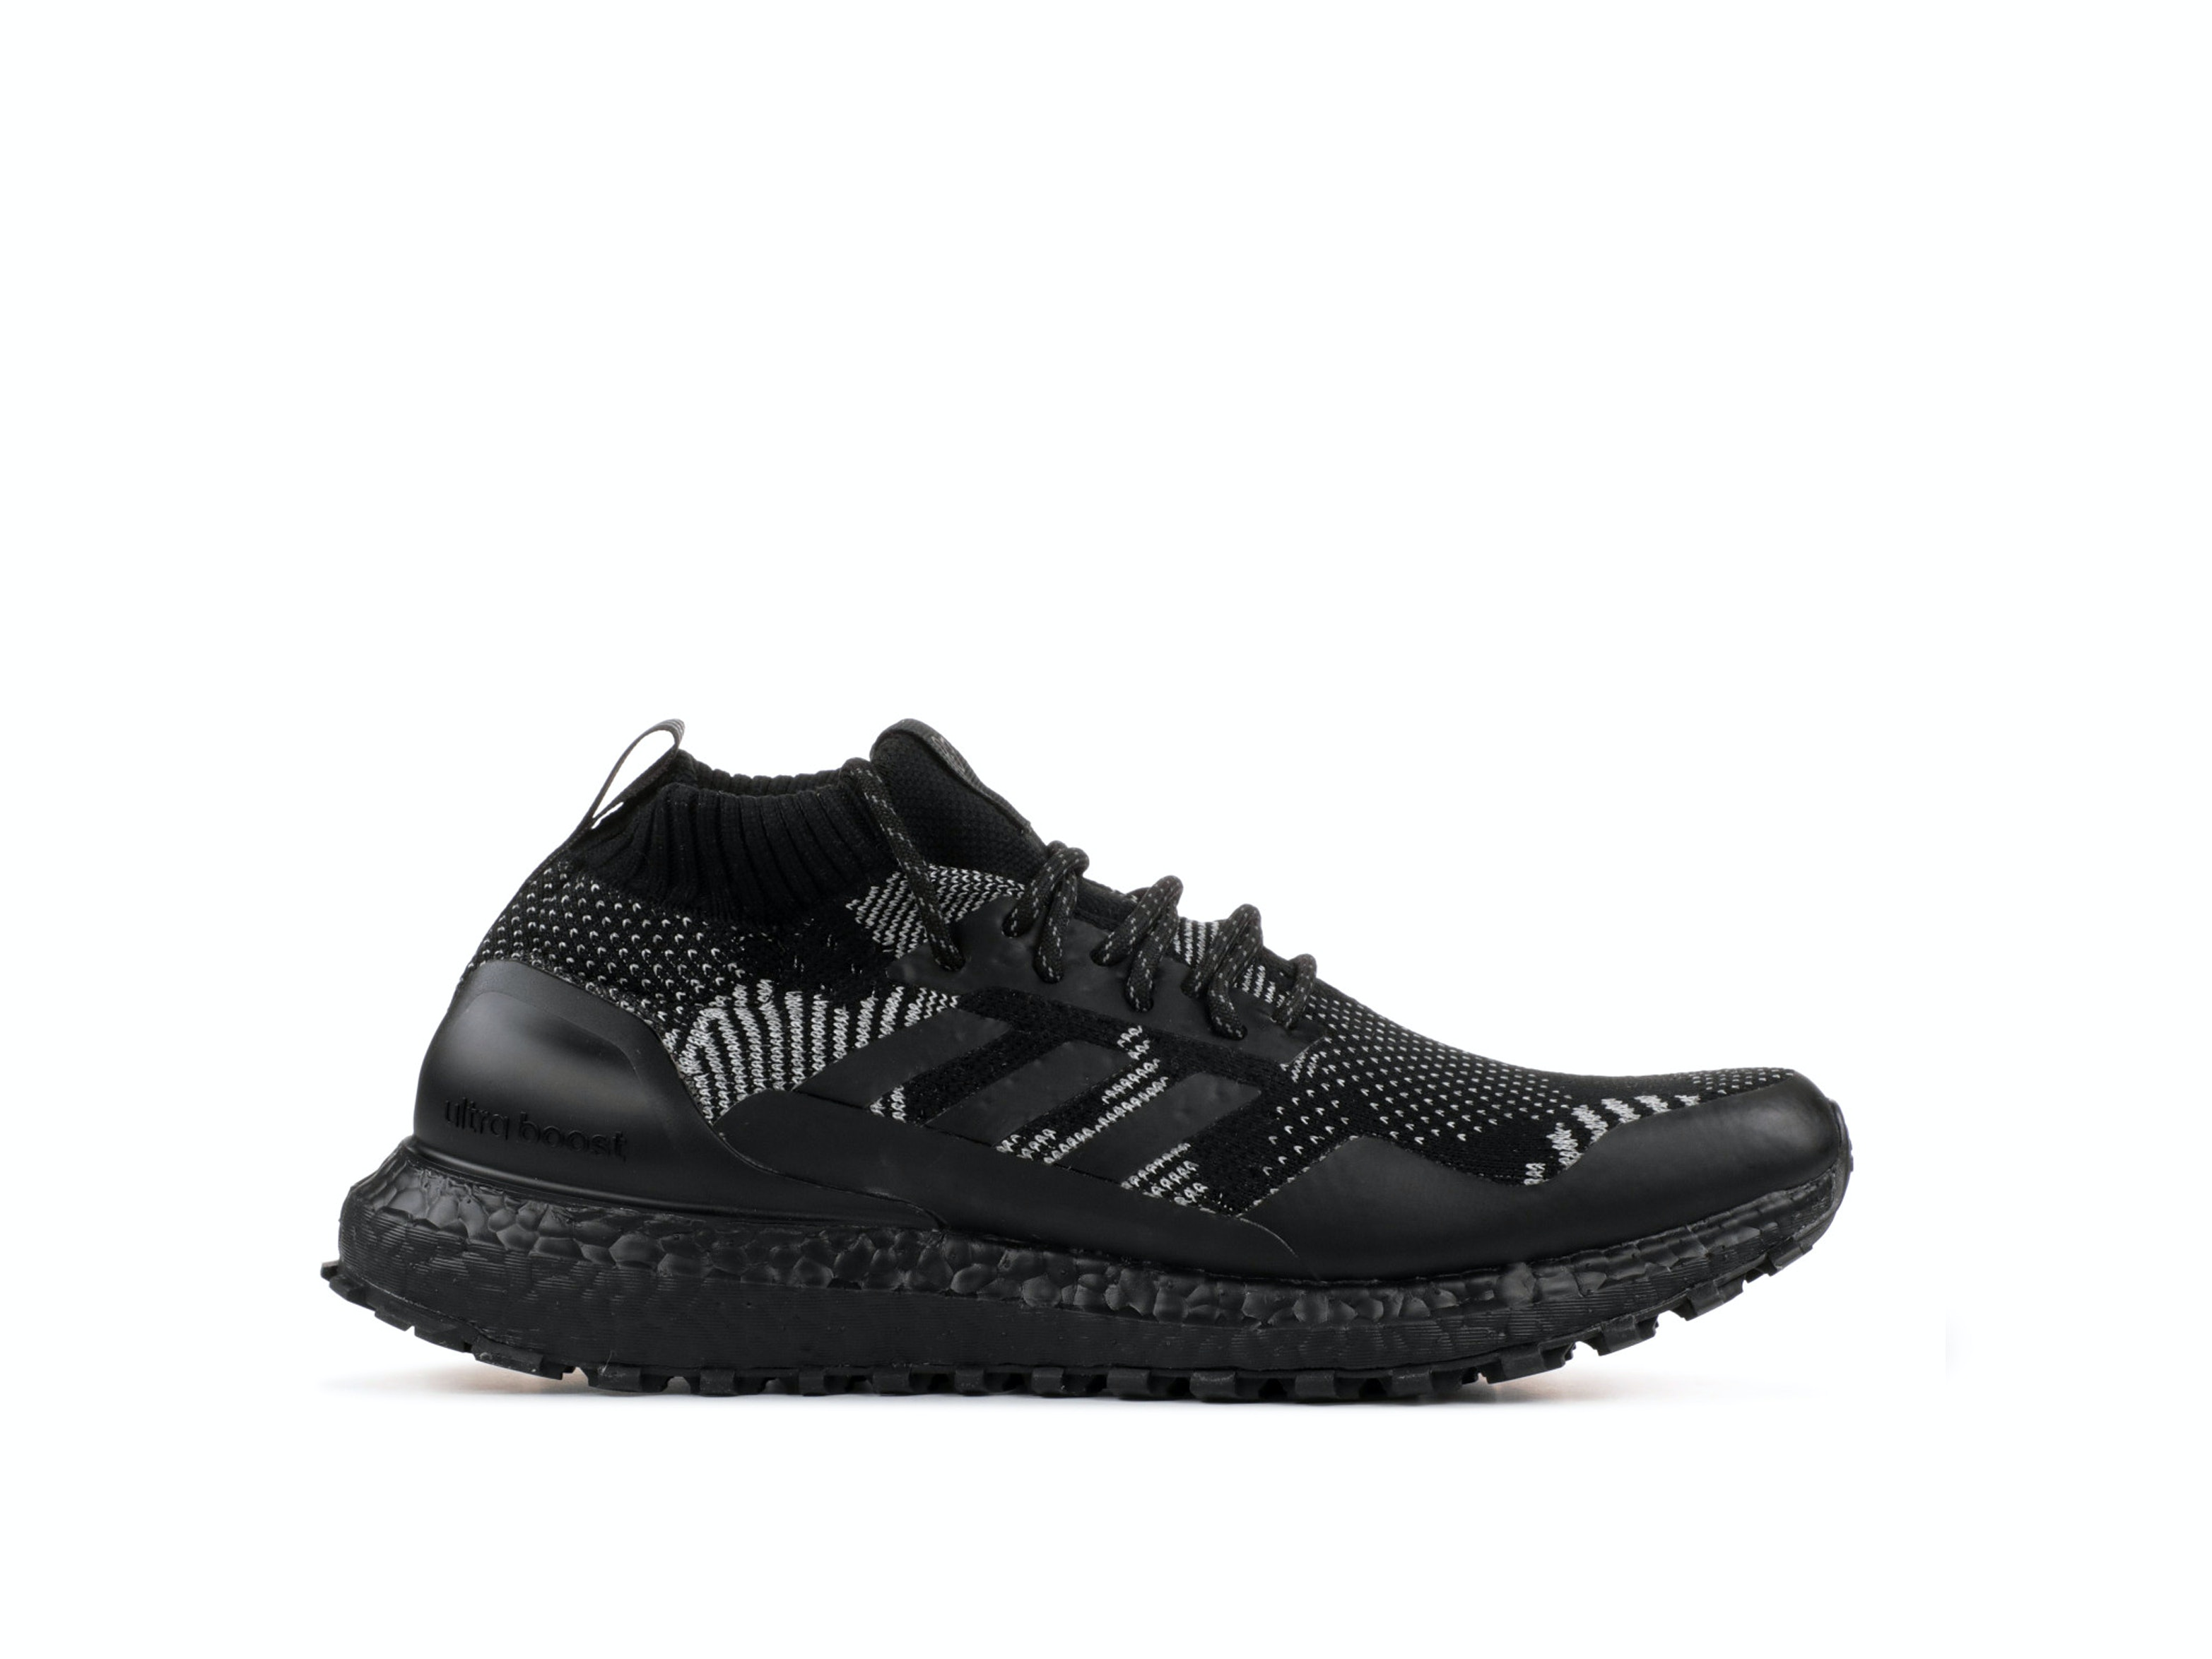 a11b5f1ea Shop UltraBoost Mid x Nonnative x Kith Online | Laced